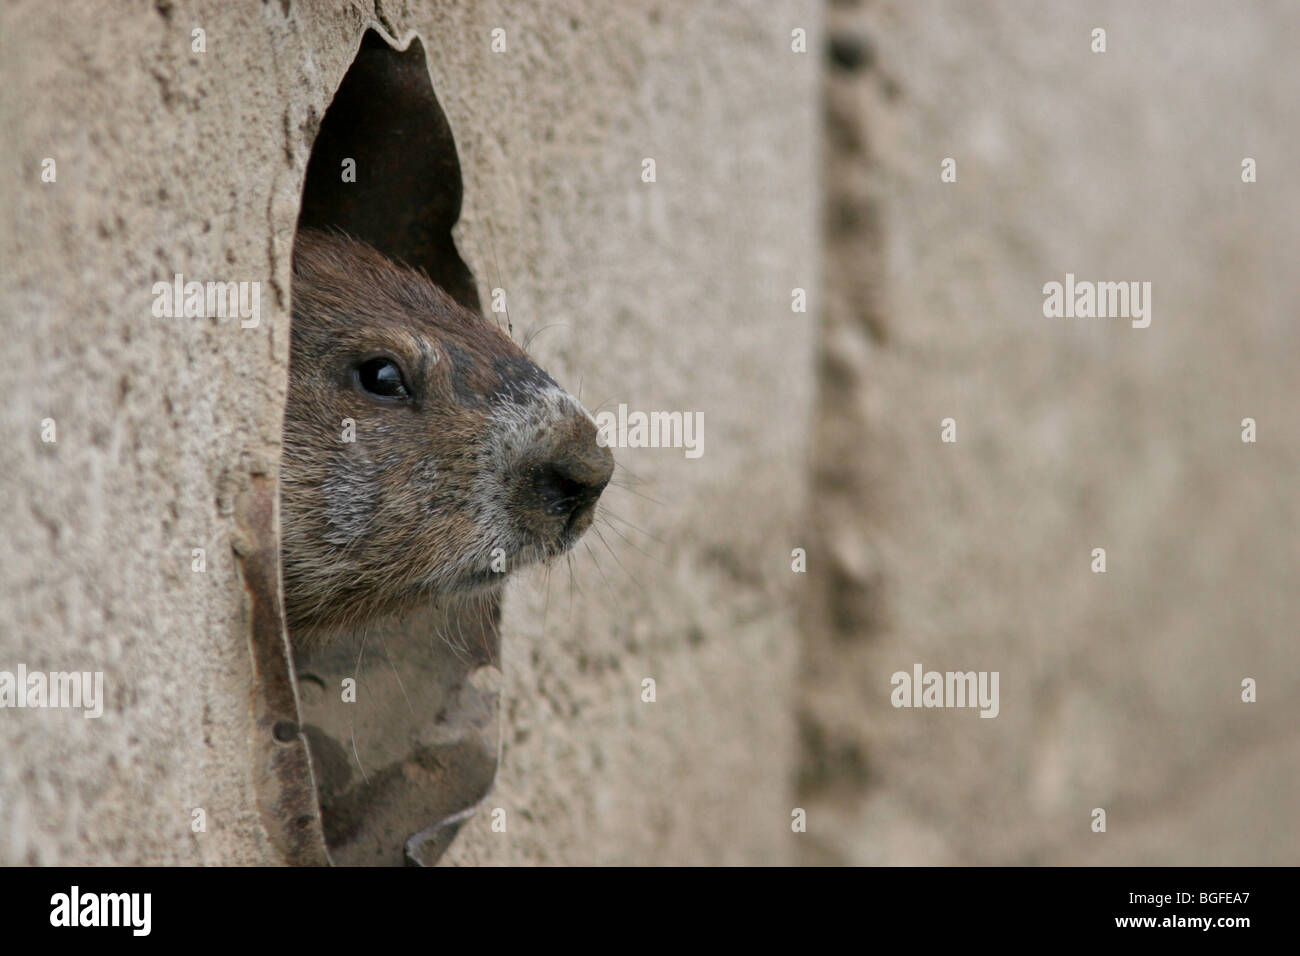 woodchuck concrete wall drain pipe - Stock Image